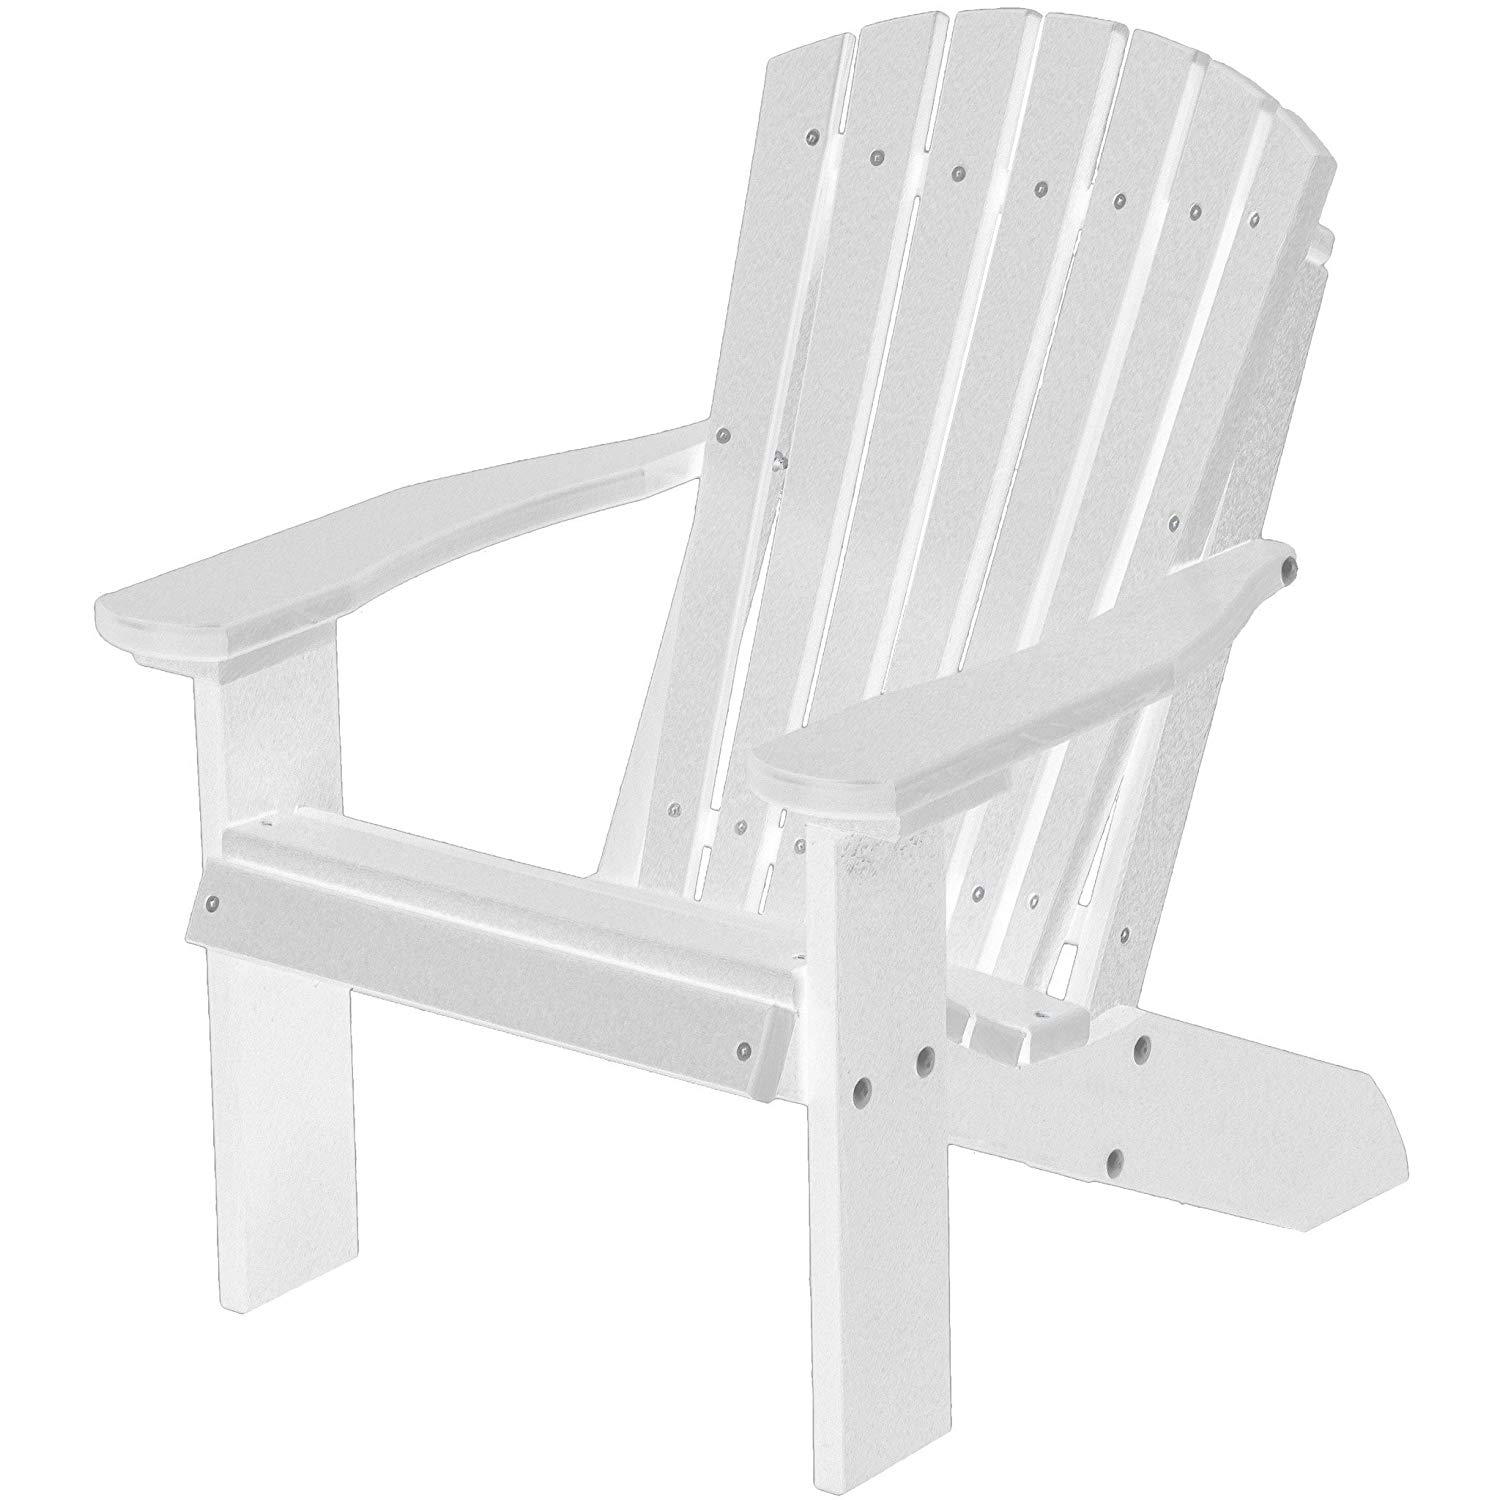 Miraculous Cheap Adirondack Chair Plastic Resin Find Adirondack Chair Andrewgaddart Wooden Chair Designs For Living Room Andrewgaddartcom